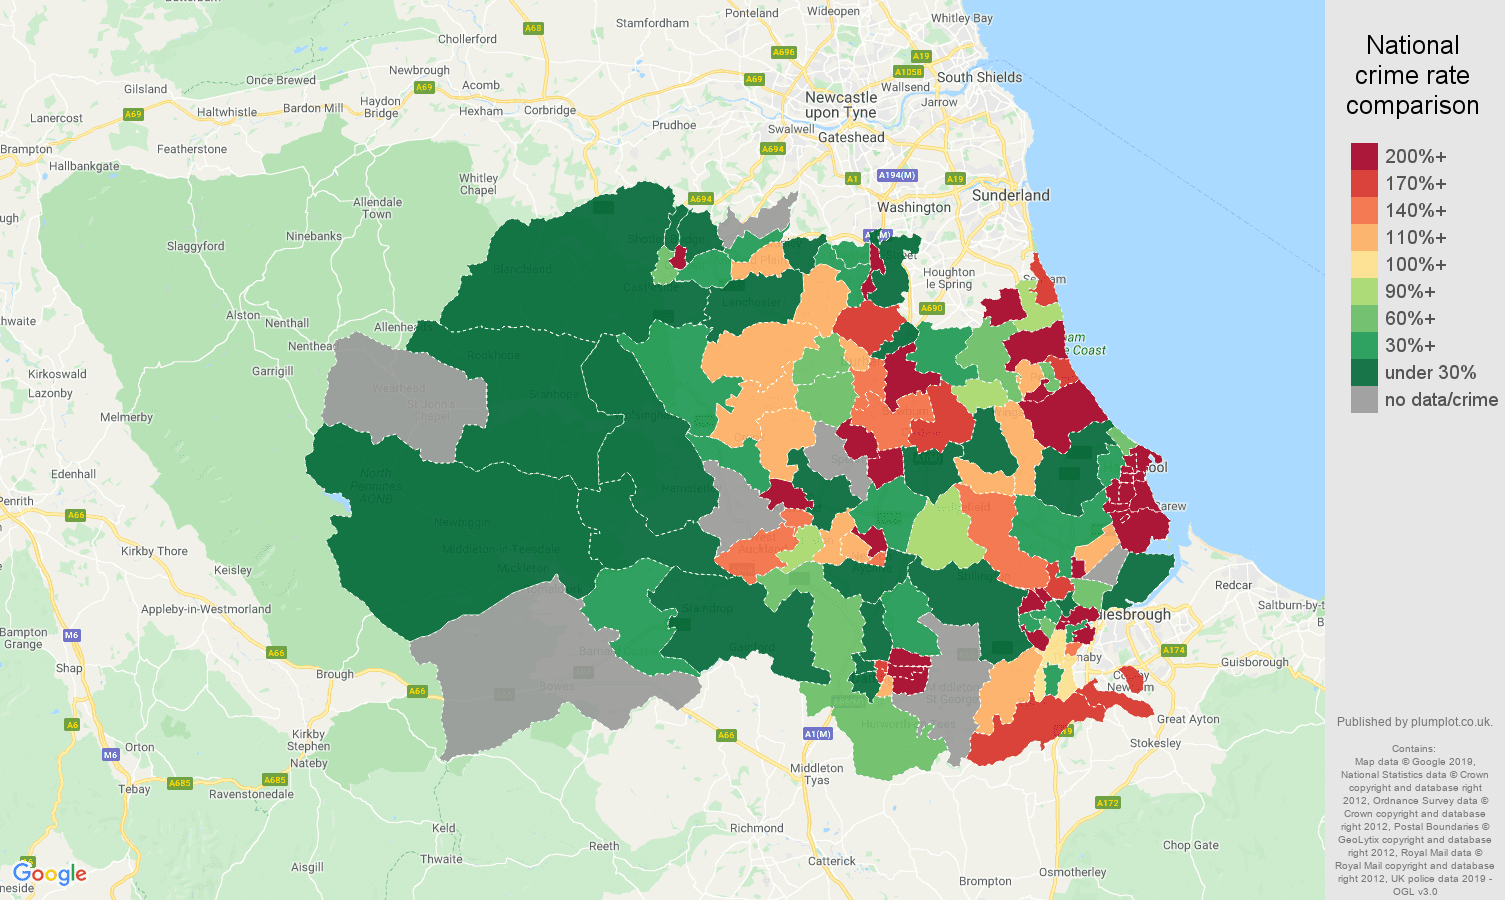 Durham county shoplifting crime rate comparison map